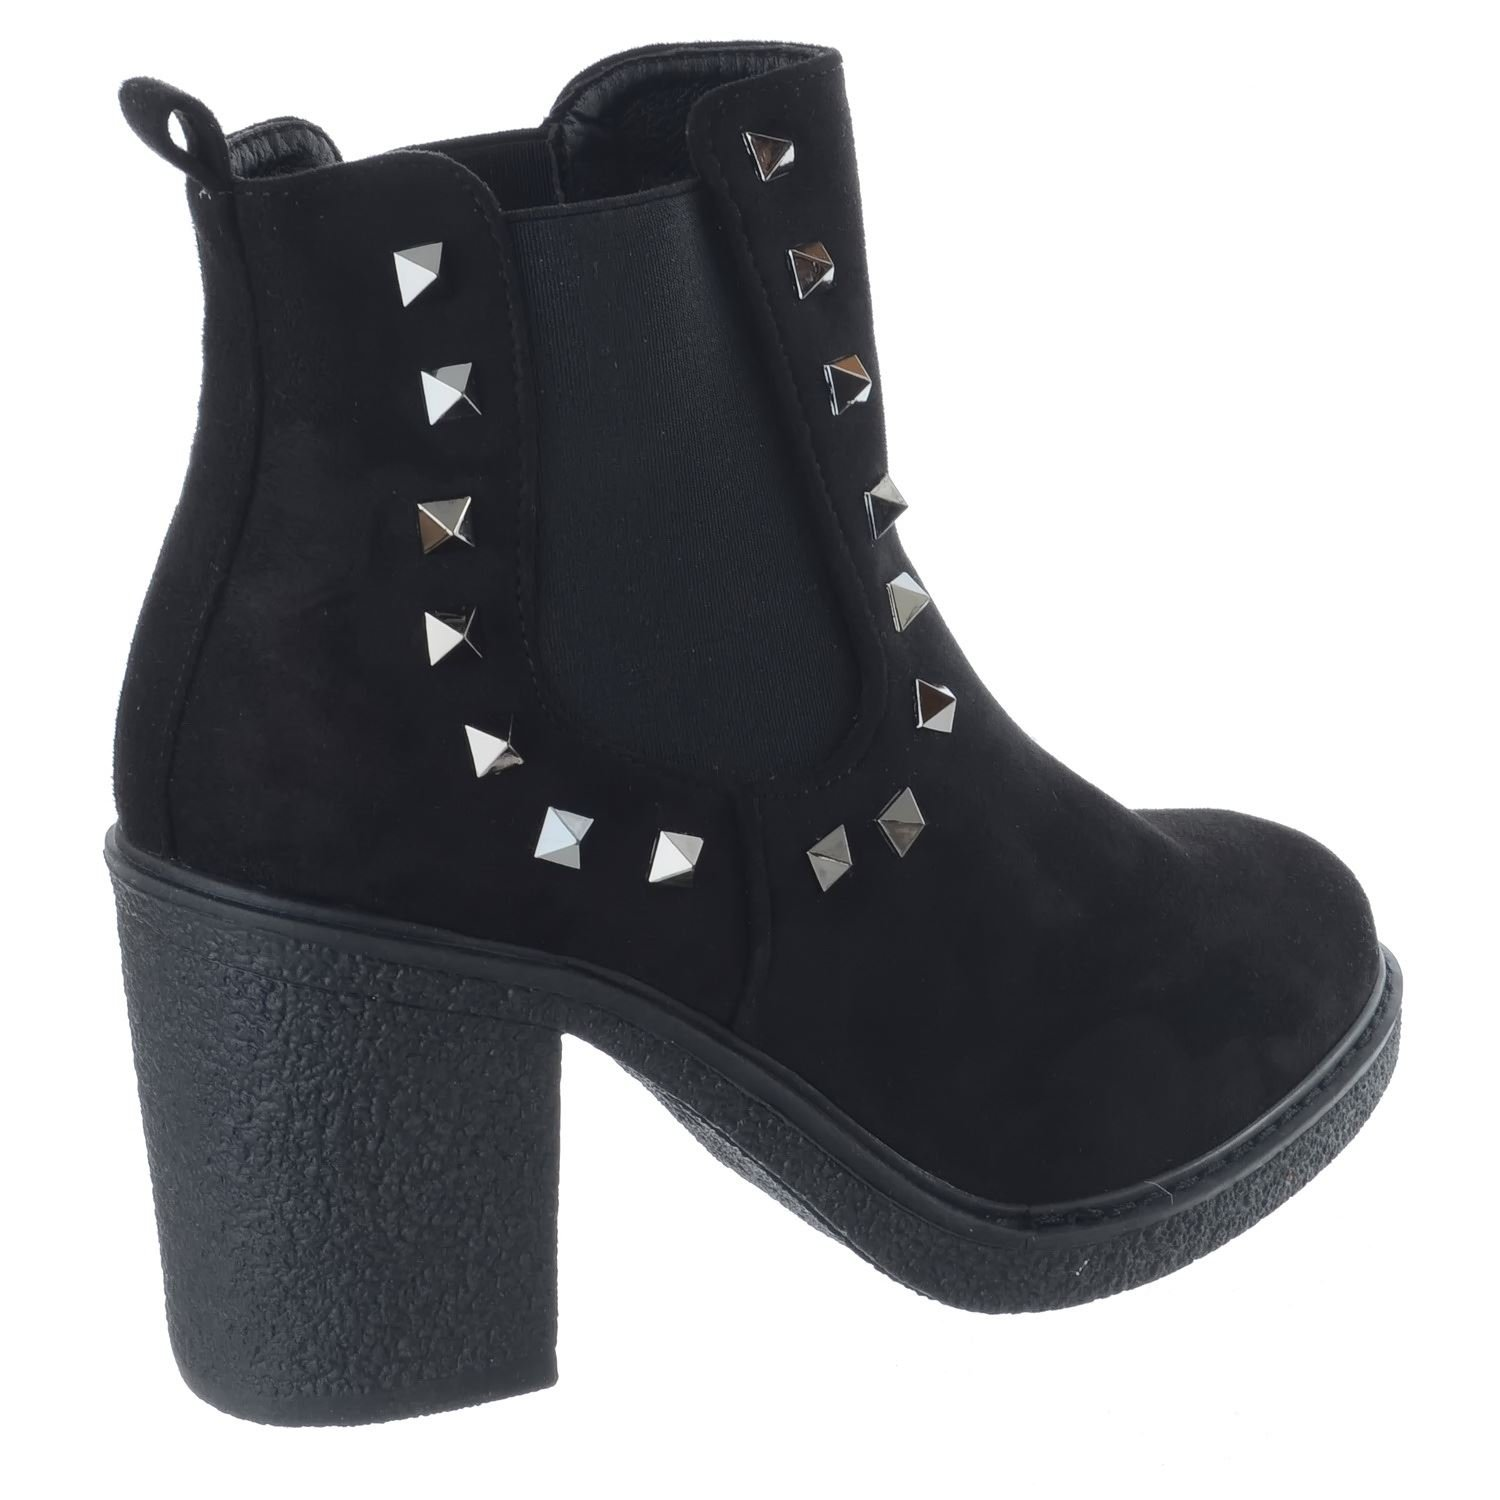 1e6c19a4c8 Miss Image UK Ladies Womens Mid High Block Heels New Chelsea Studded  Platform Ankle Boots Shoes Size: Amazon.co.uk: Shoes & Bags